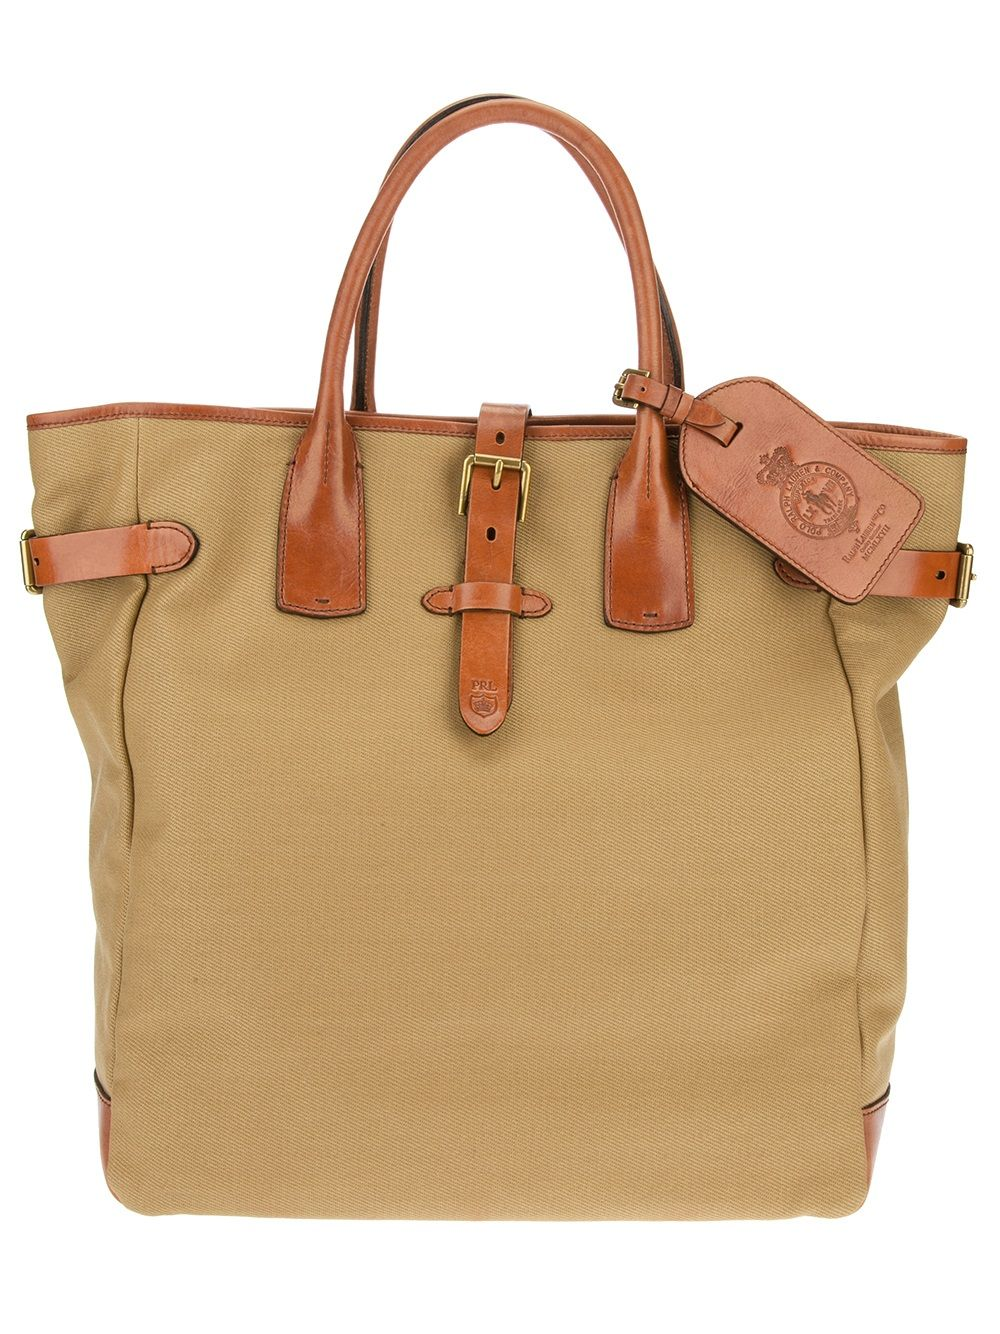 POLO RALPH LAUREN - canvas shopper 7   Bag   Pinterest   Polo ralph ... 7614b404c5